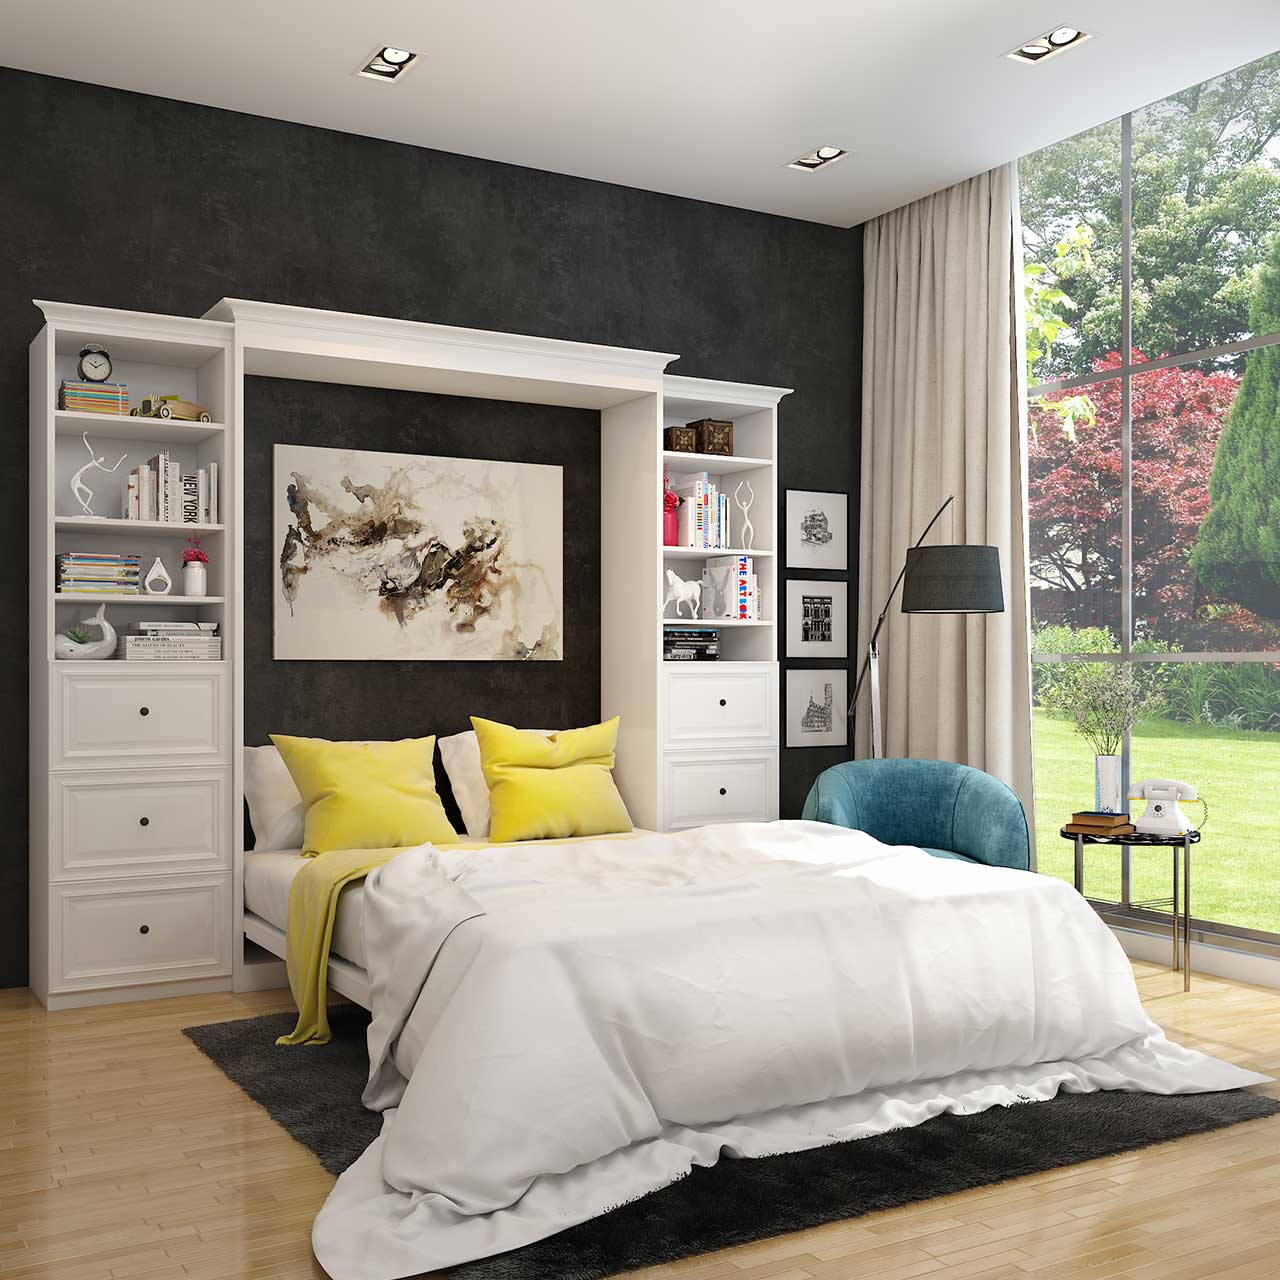 Put the Matter to Bed for Bedroom Design